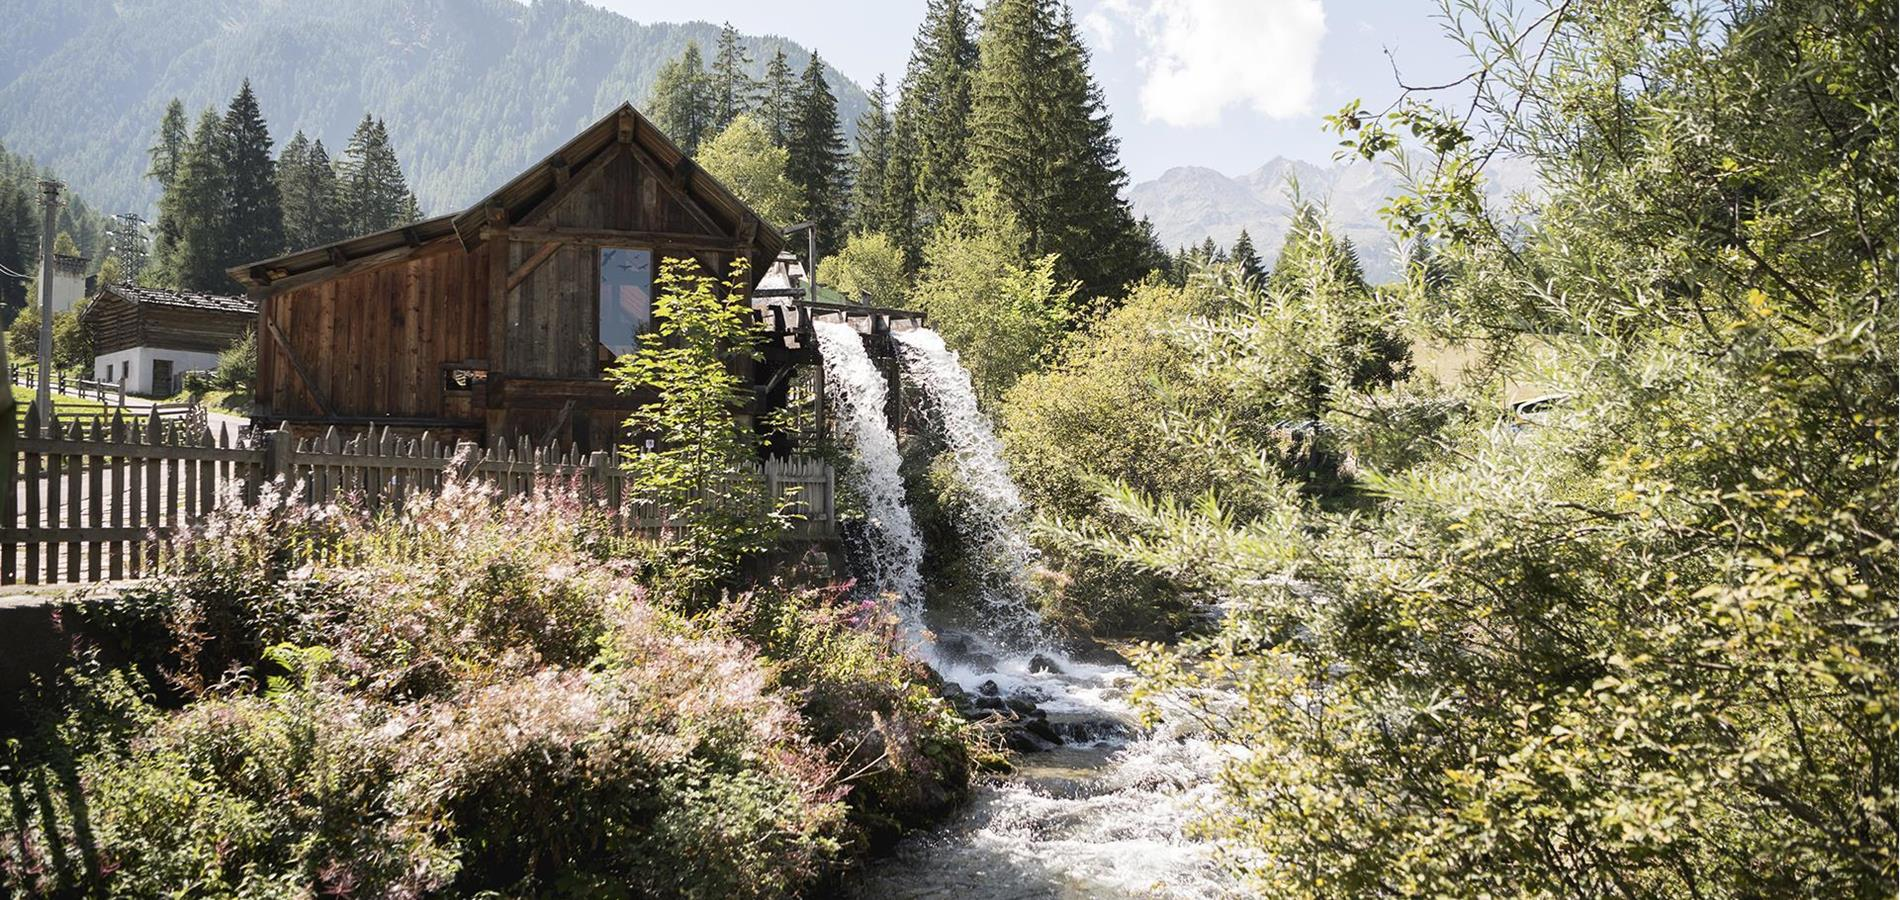 Places of Interest in the Ultental Valley